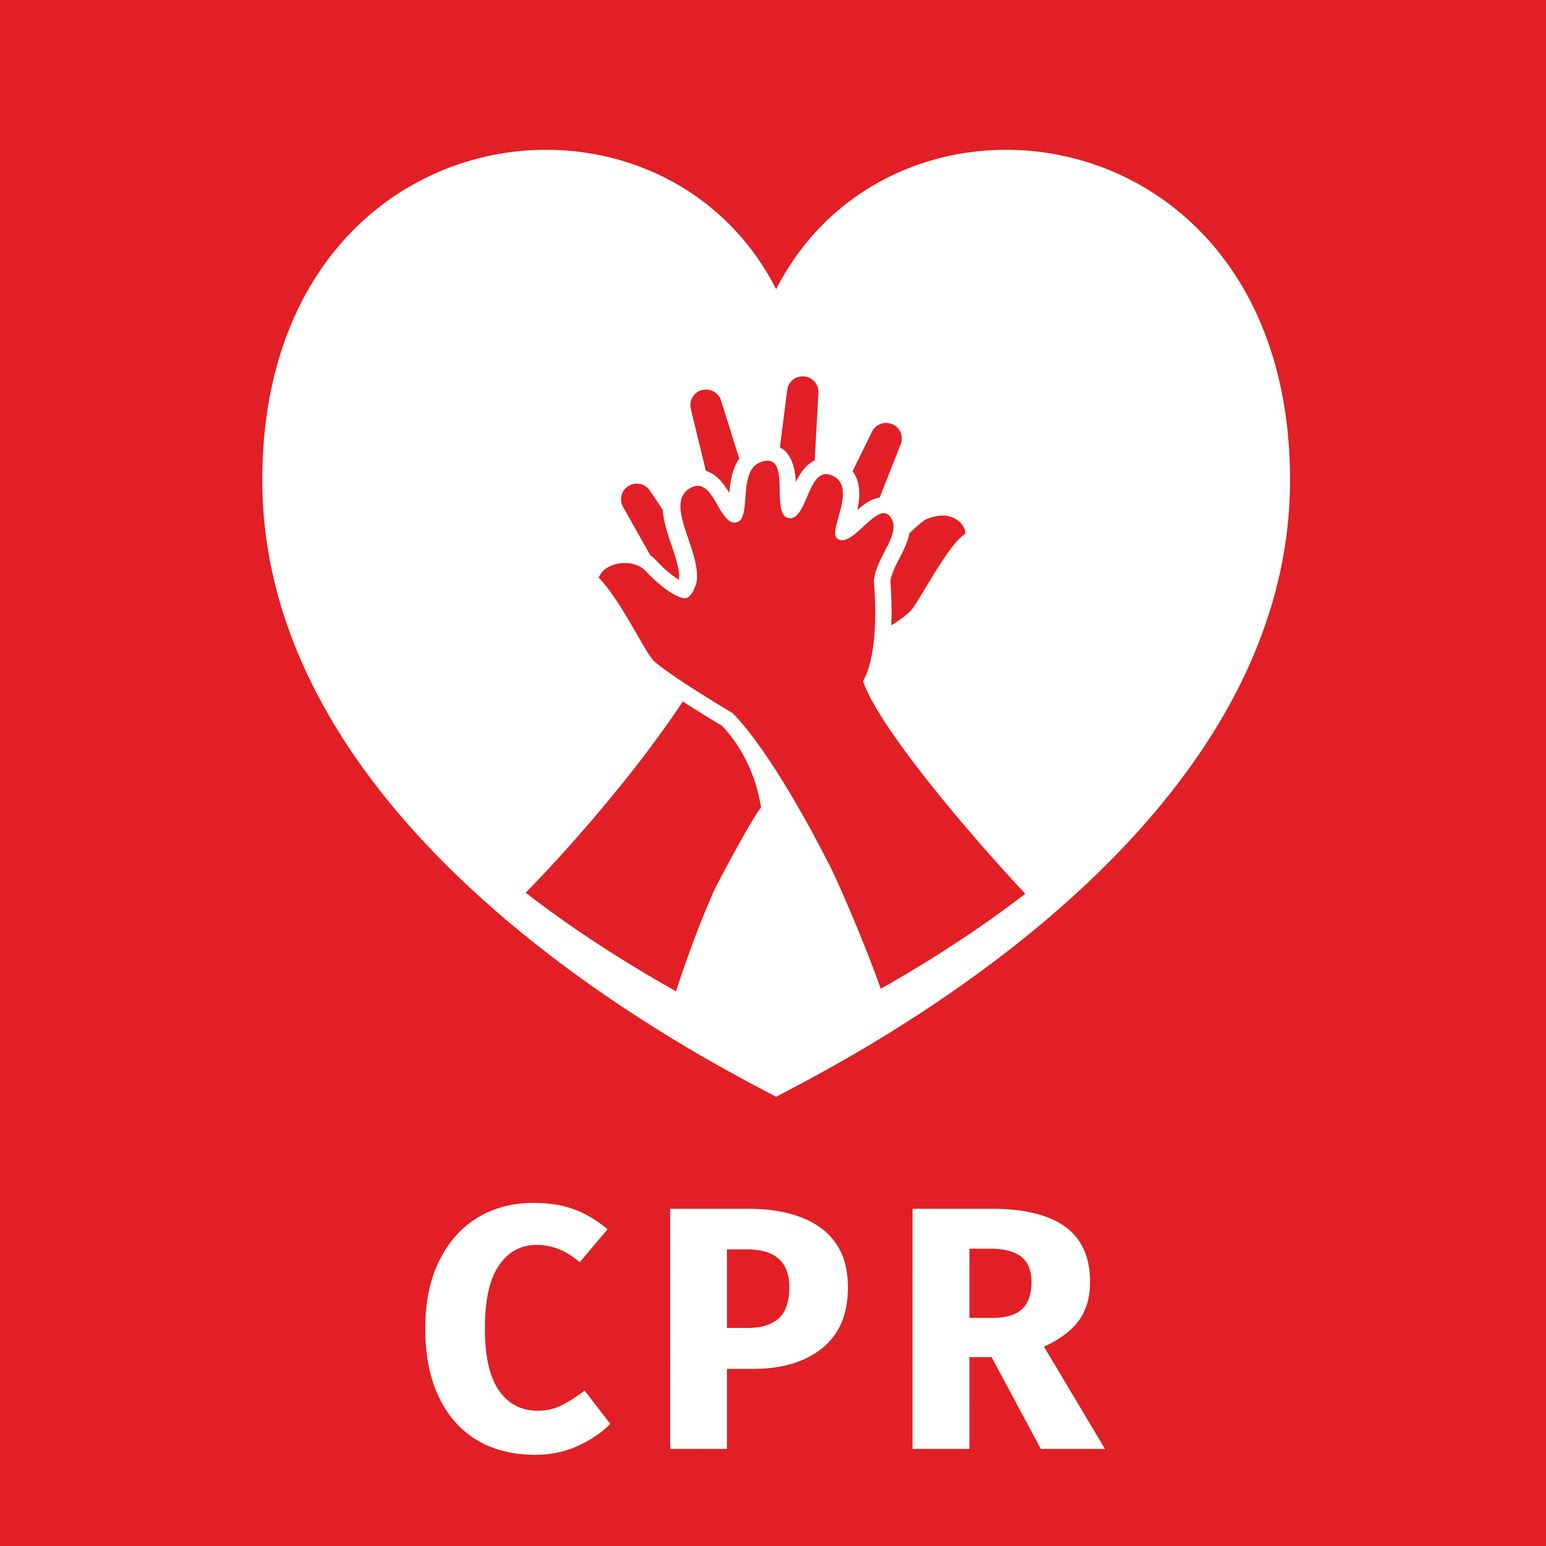 CPR Graphic